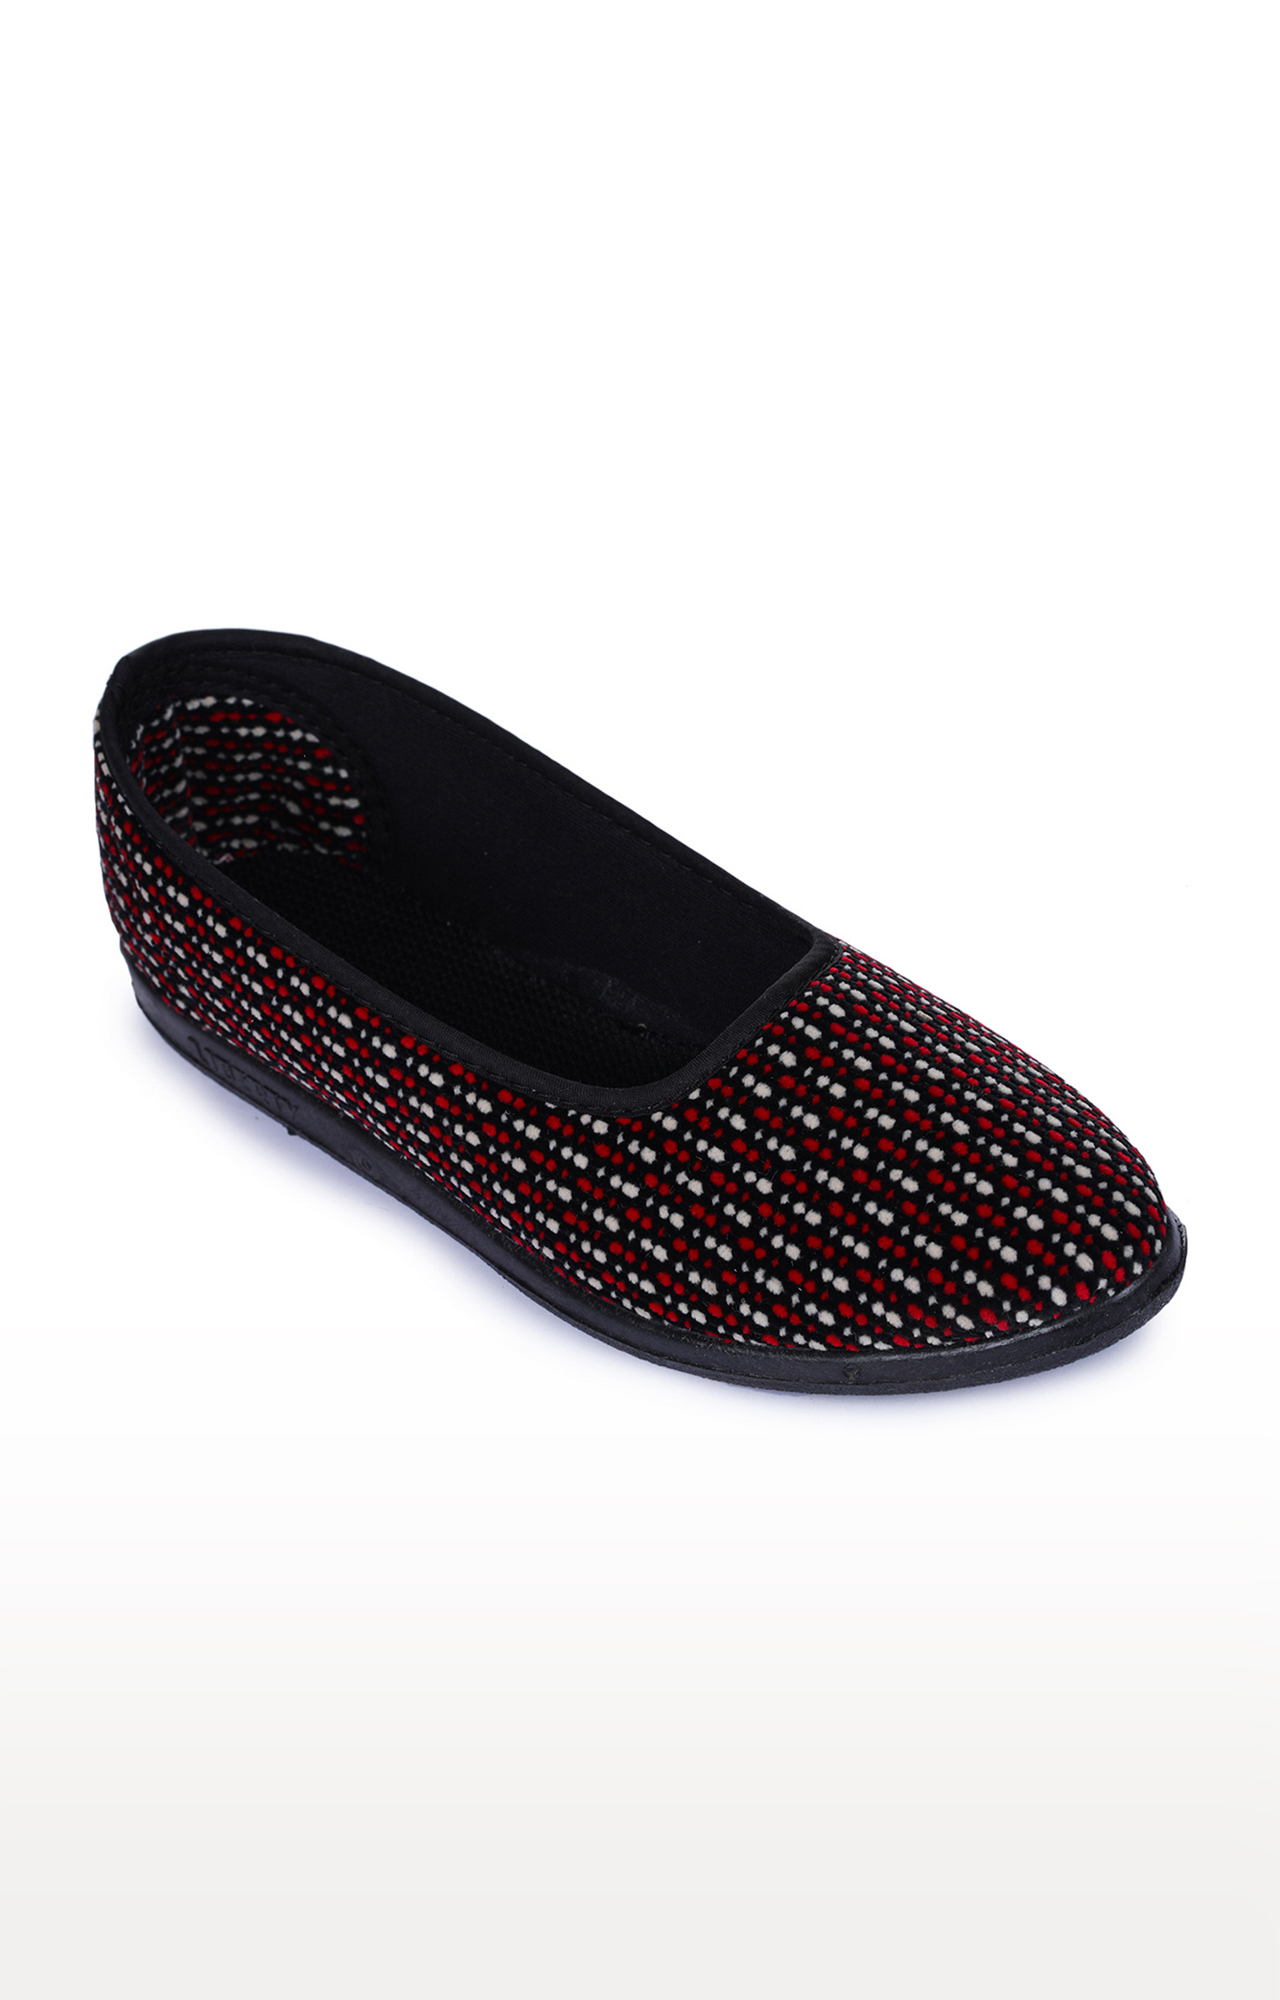 Liberty | Gliders by Liberty Red Ballerinas